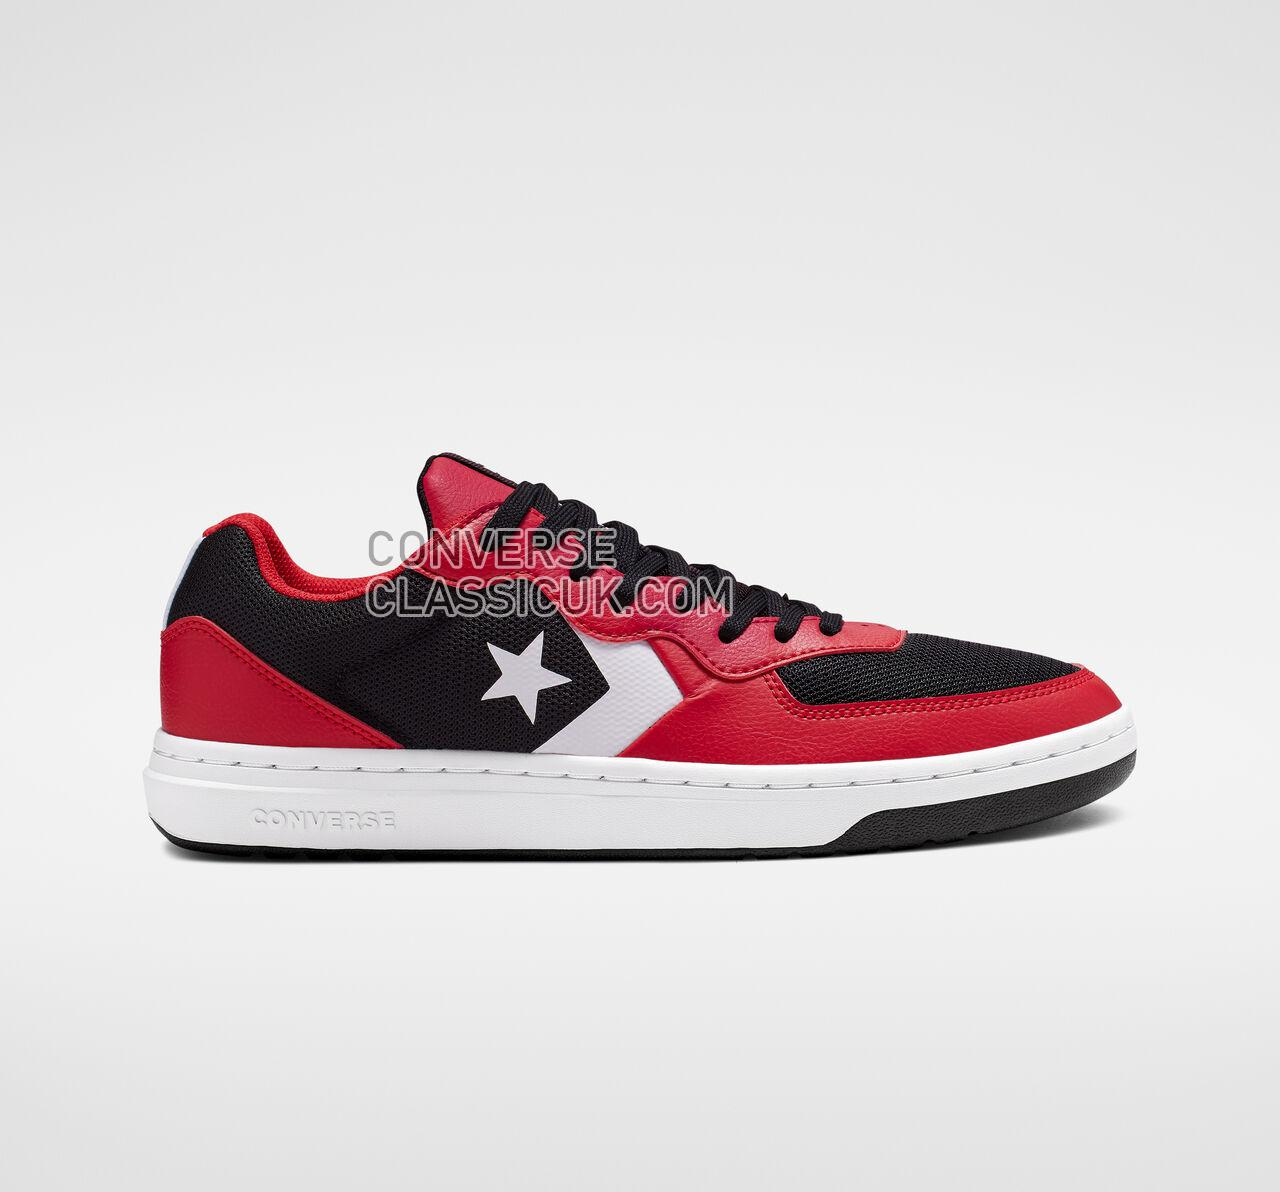 Converse Rival Low Top Mens Womens Unisex 164895C Black/Enamel Red/White Shoes